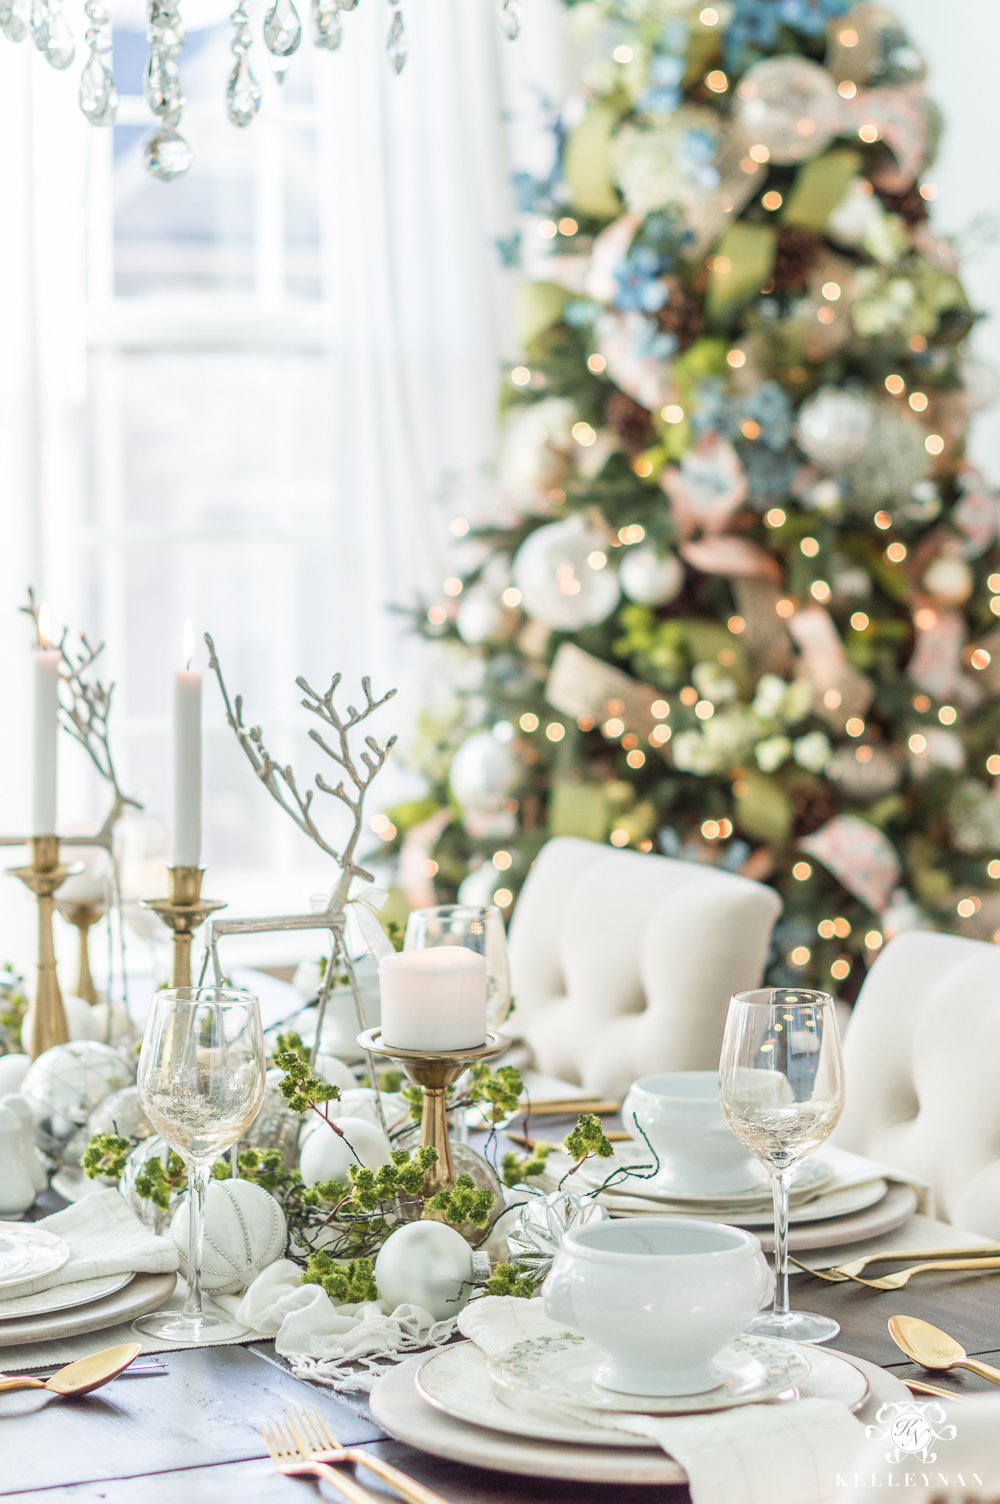 Elegant Christmas Dining Room with Meadow Theme